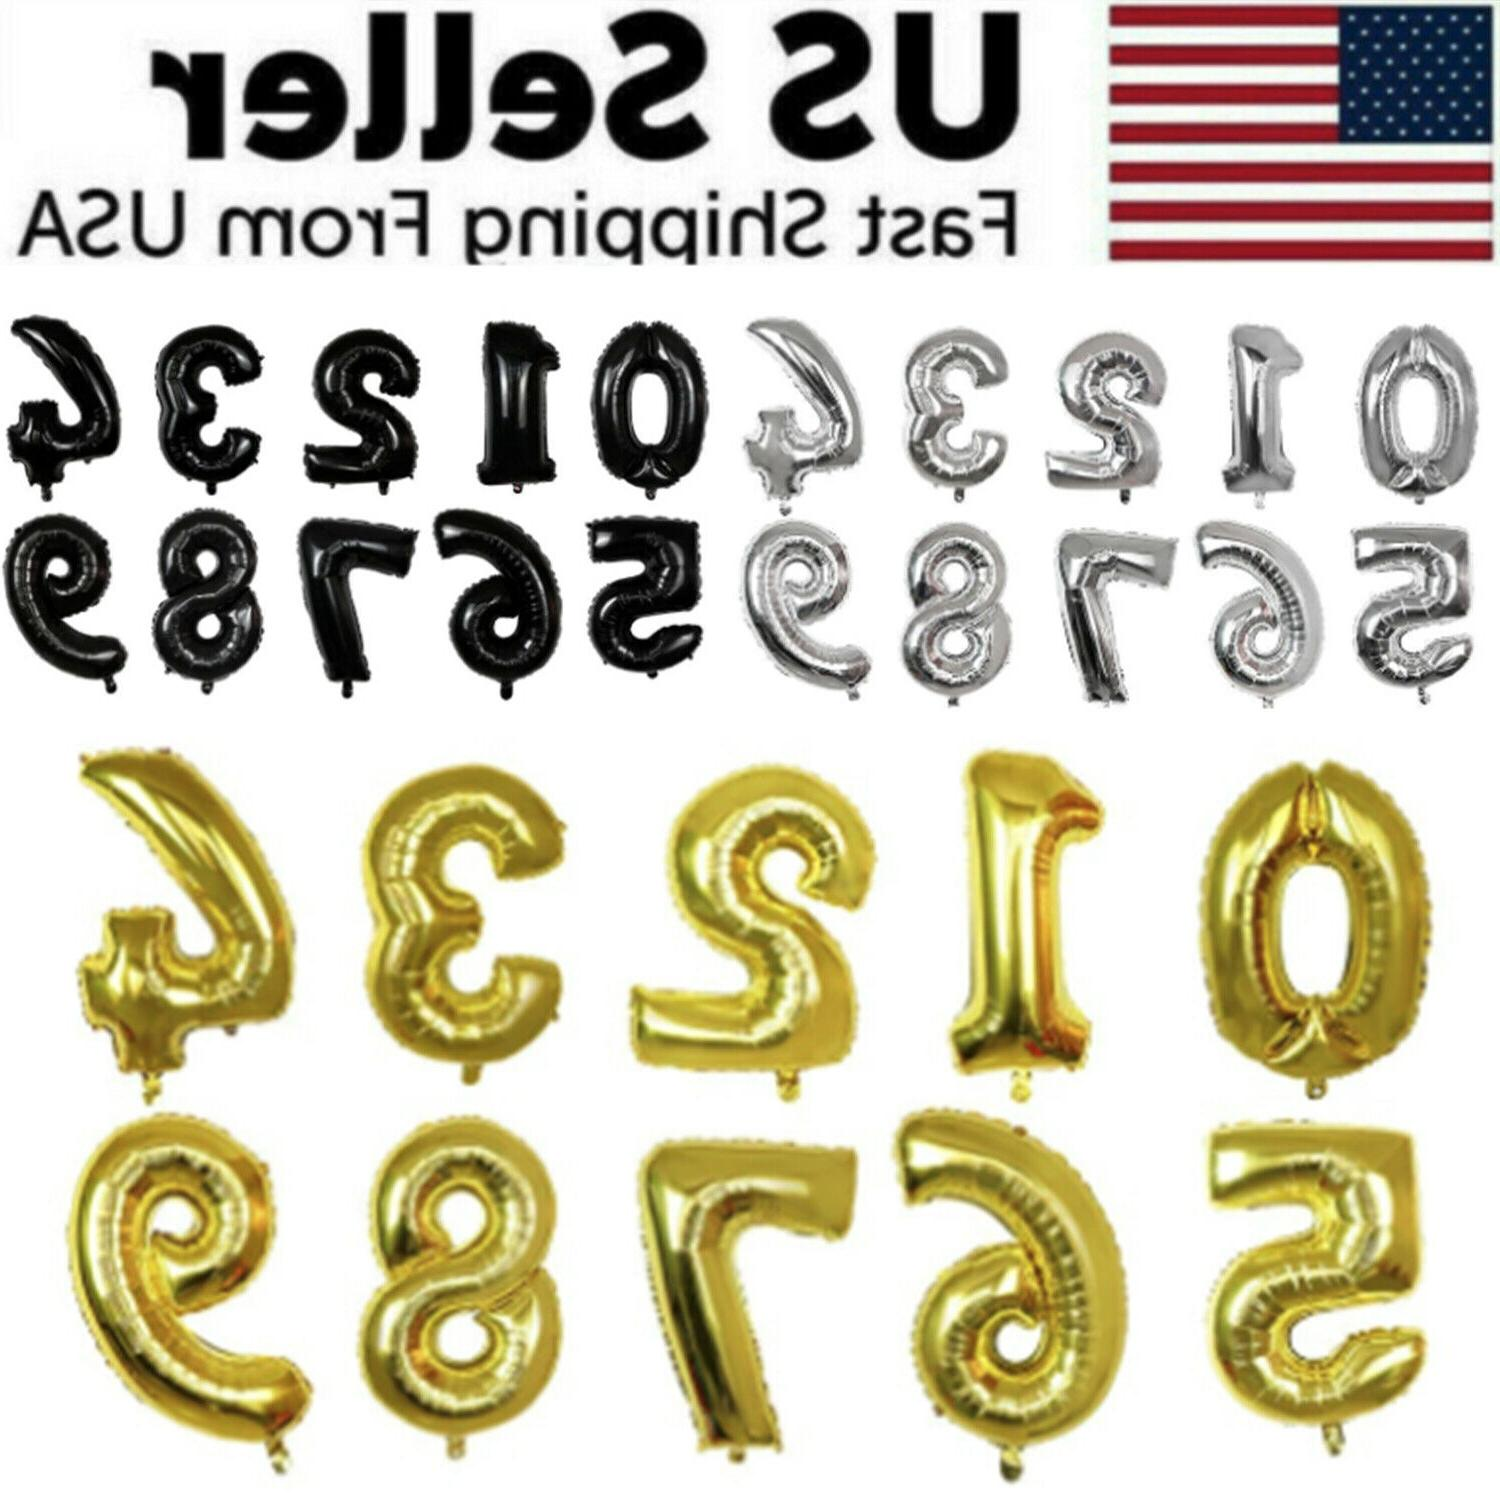 32 large number foil balloon digit balloons